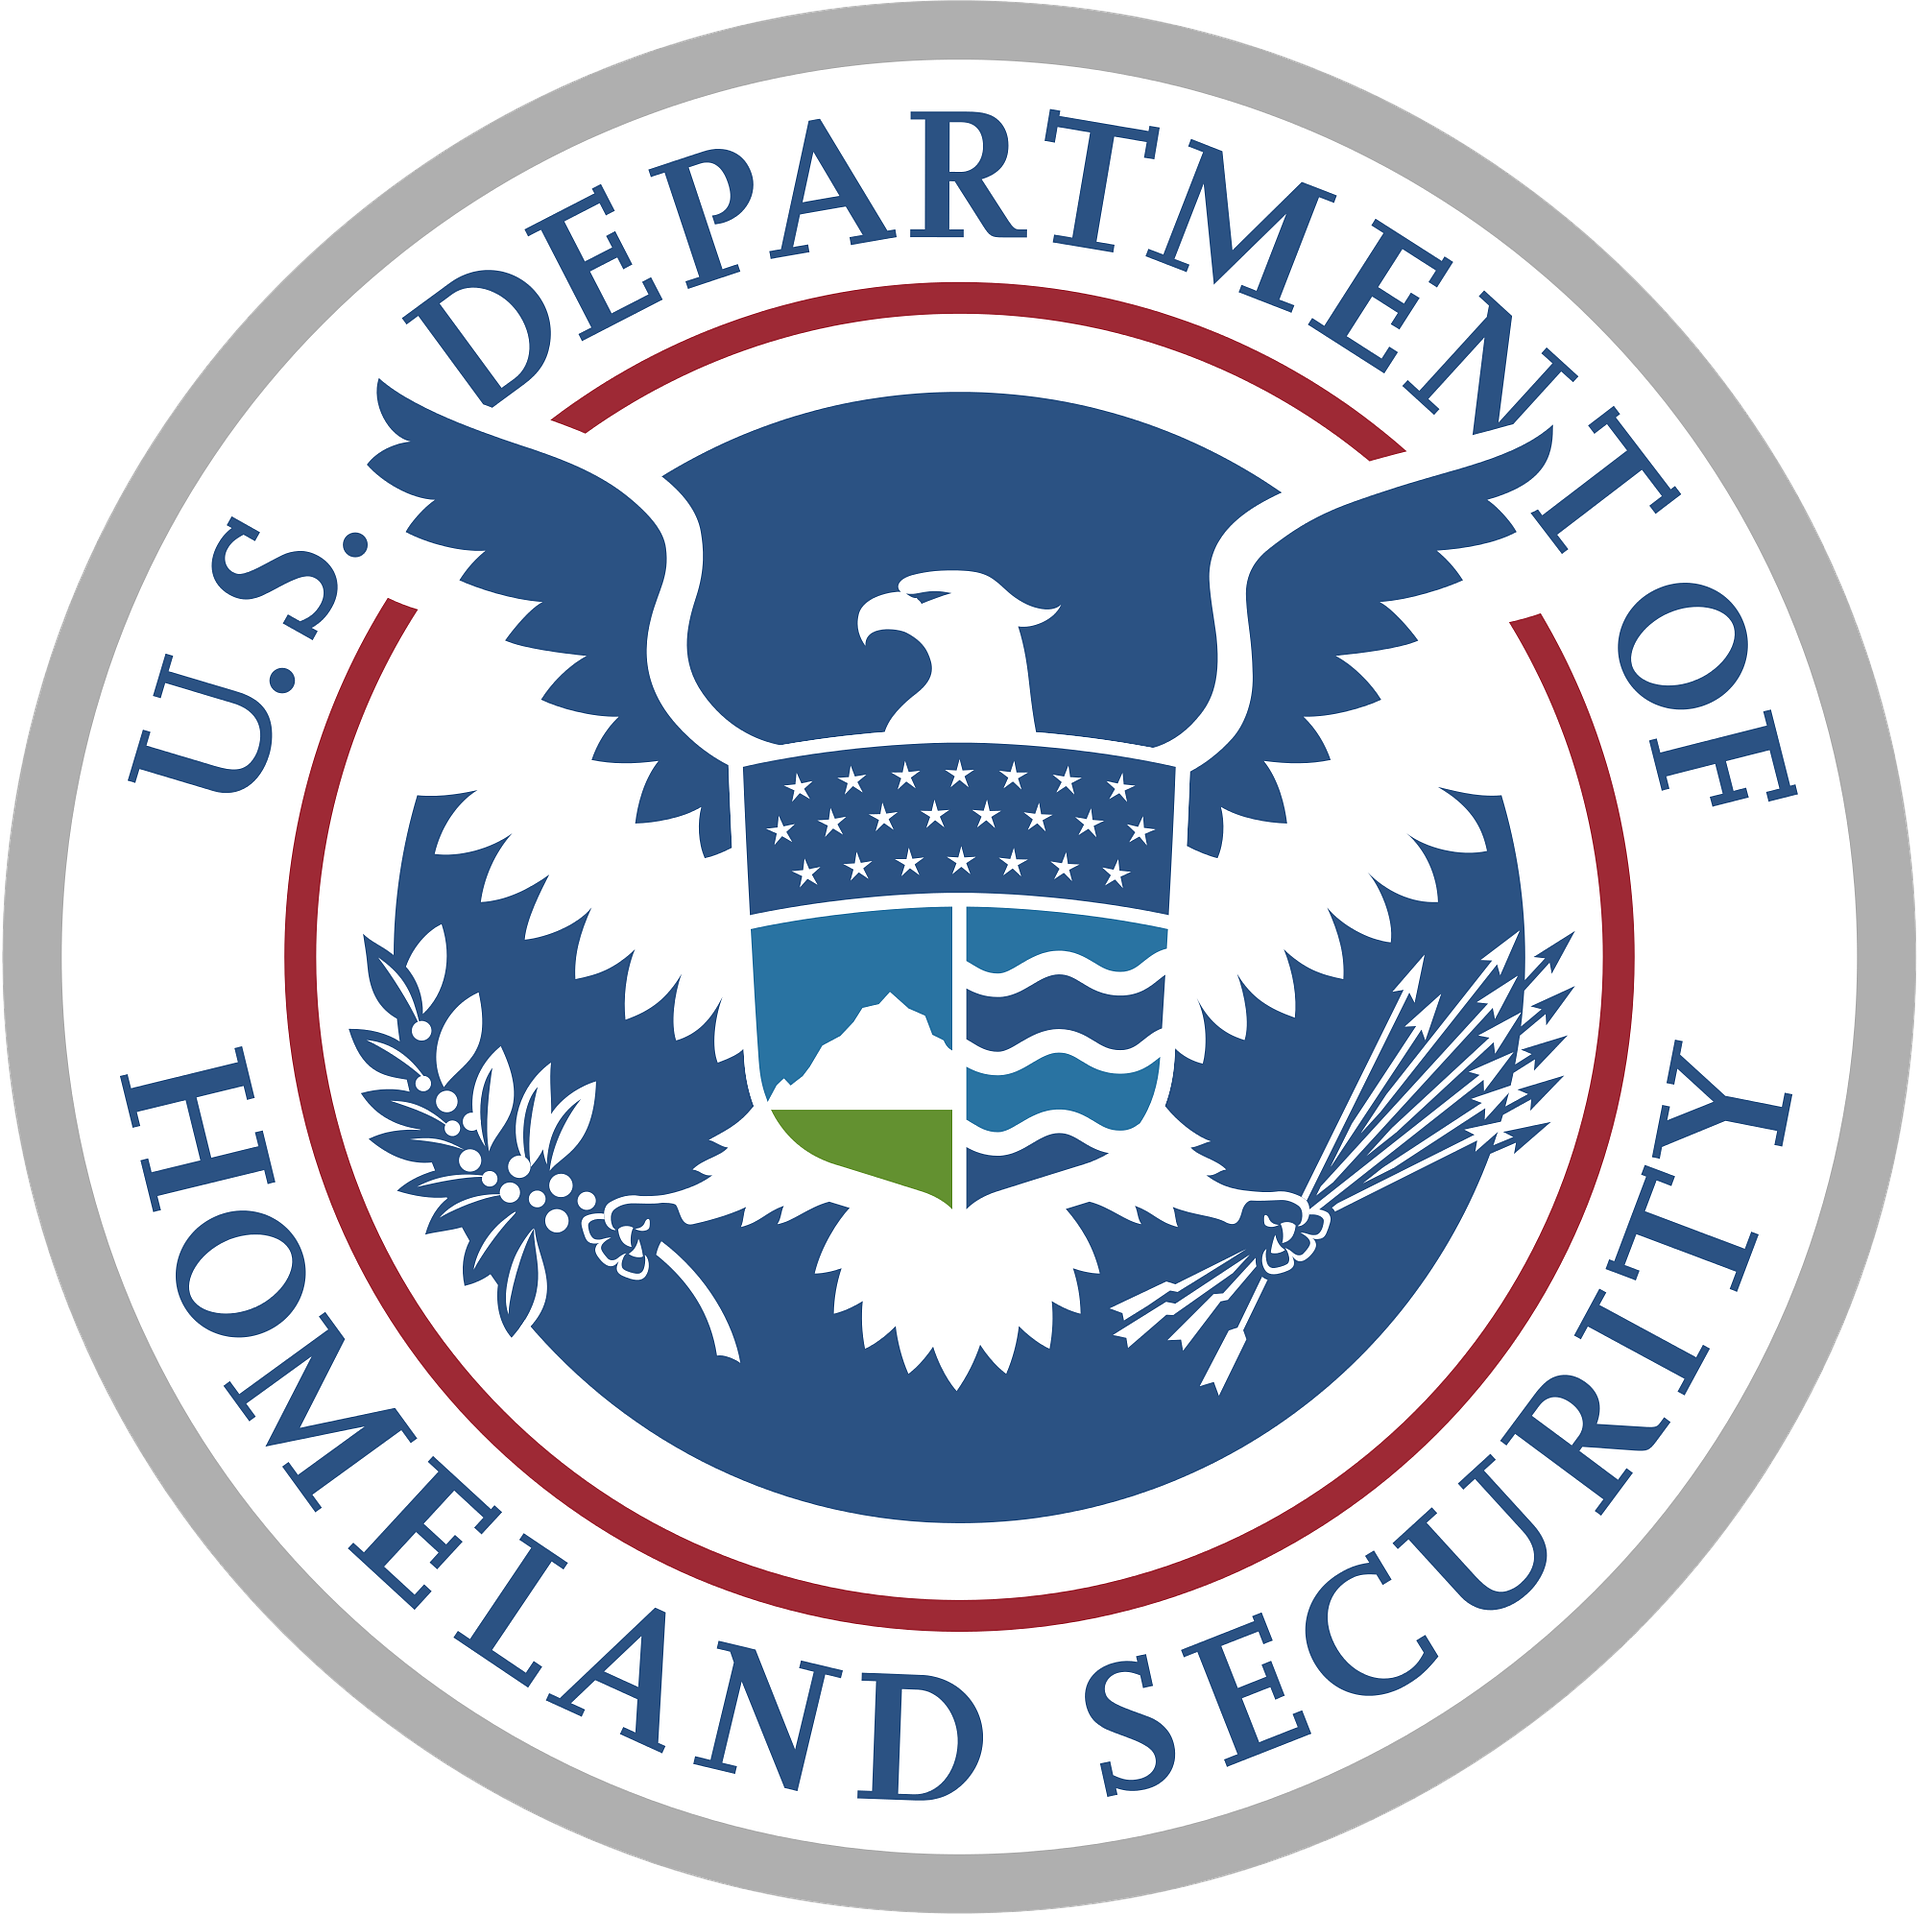 Contrasto al terrorismo: il piano Usa di Homeland Security